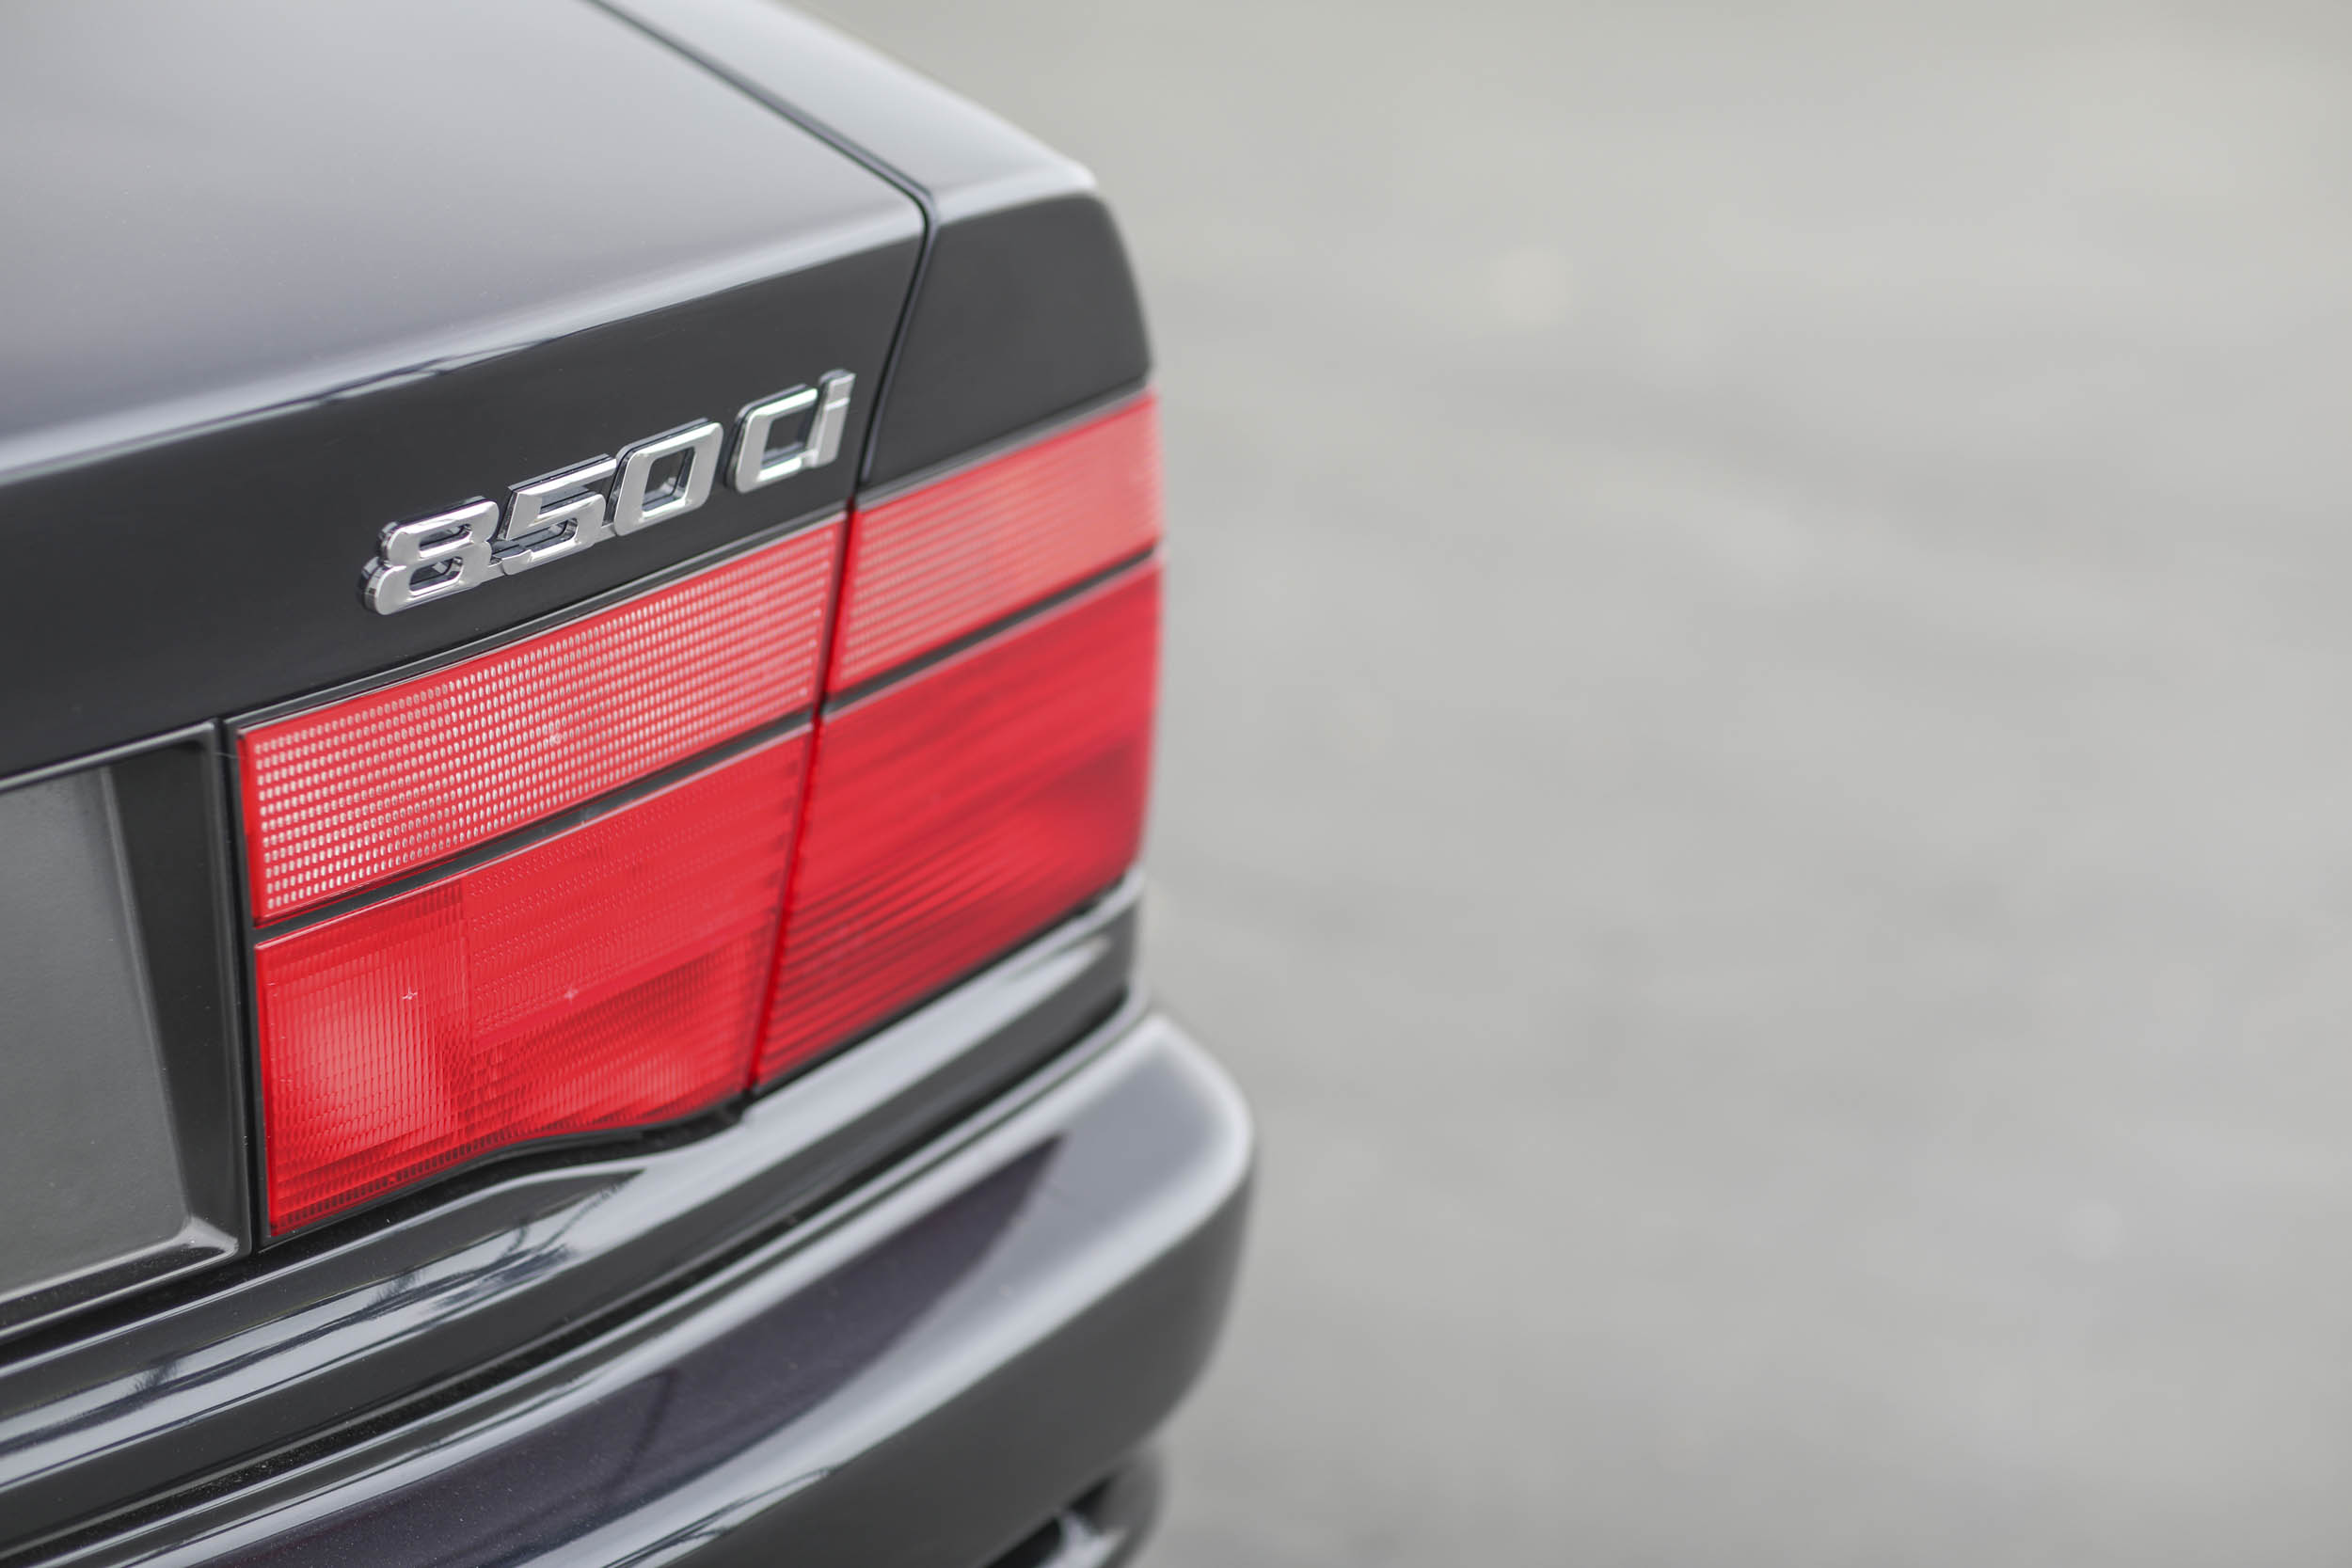 1993 BMW 850Ci badge and tail light detail